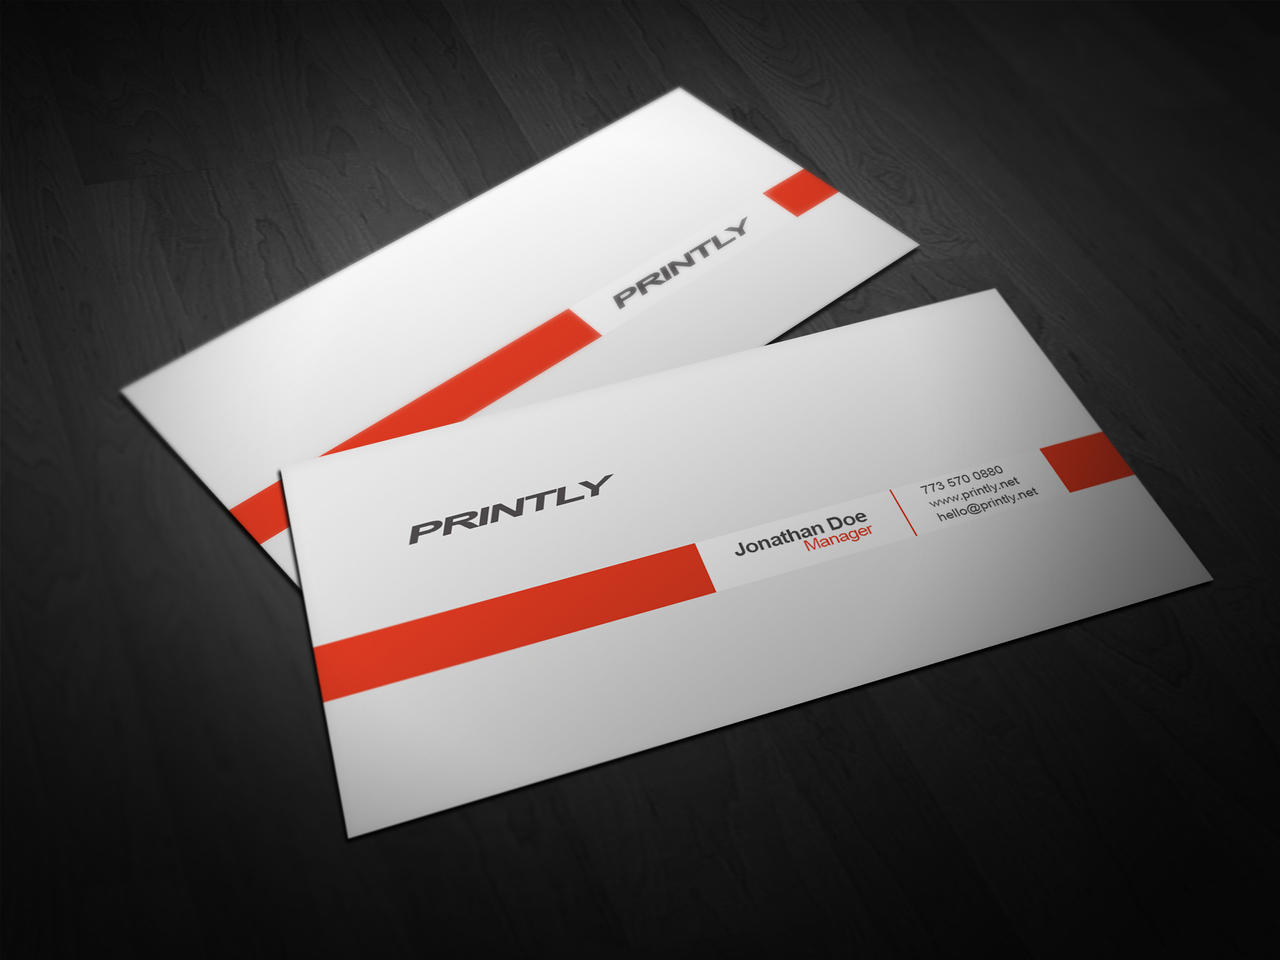 Free printly business card psd template by kjarmo on deviantart free printly business card psd template by kjarmo wajeb